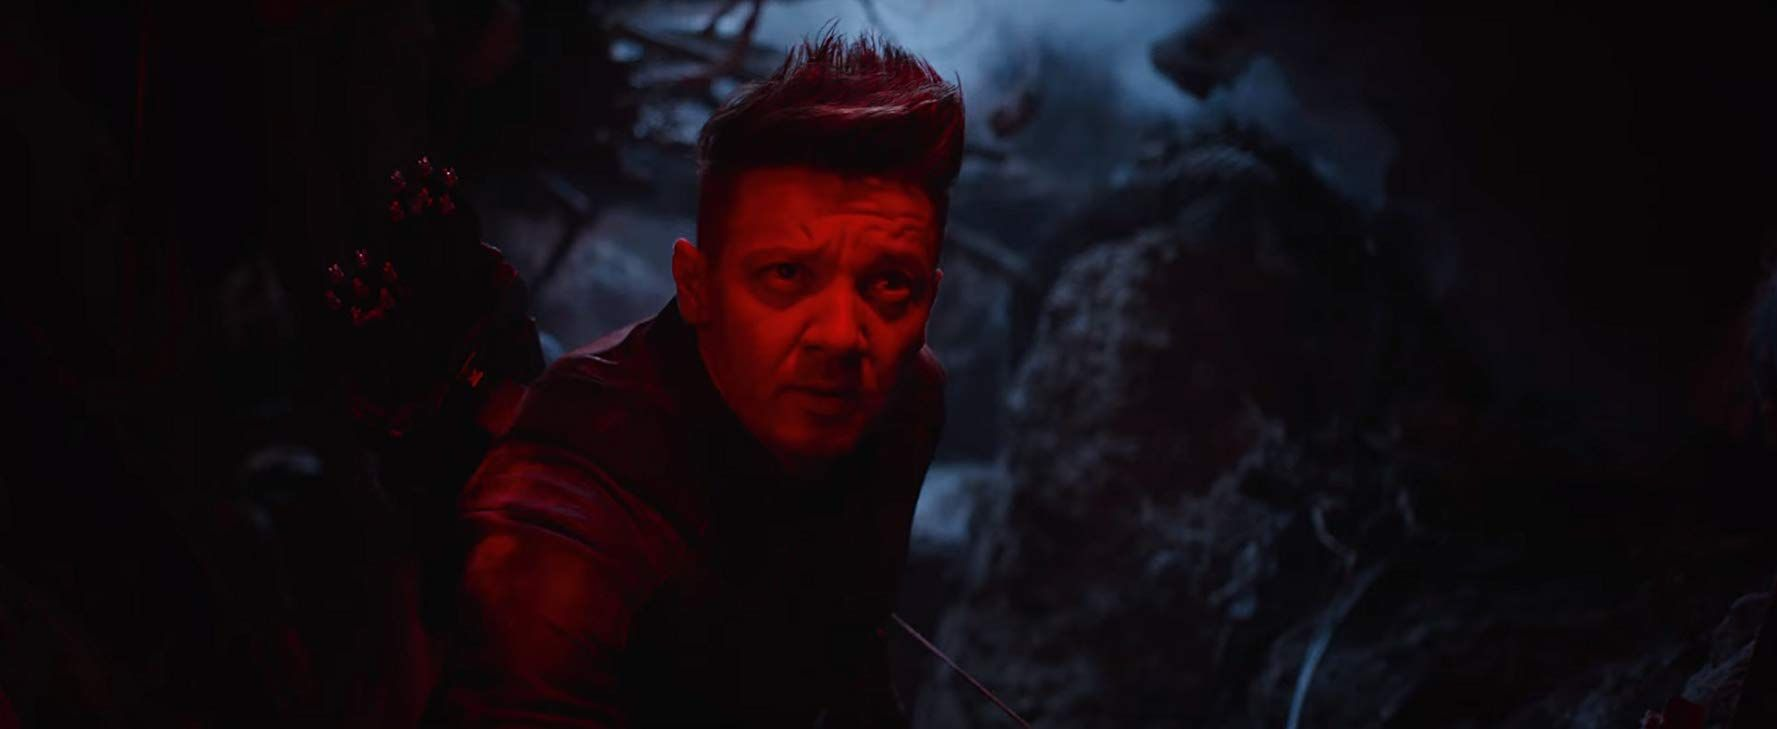 Rezultat iskanja slik za AVENGERS ENDGAME MOVIE PICTURES